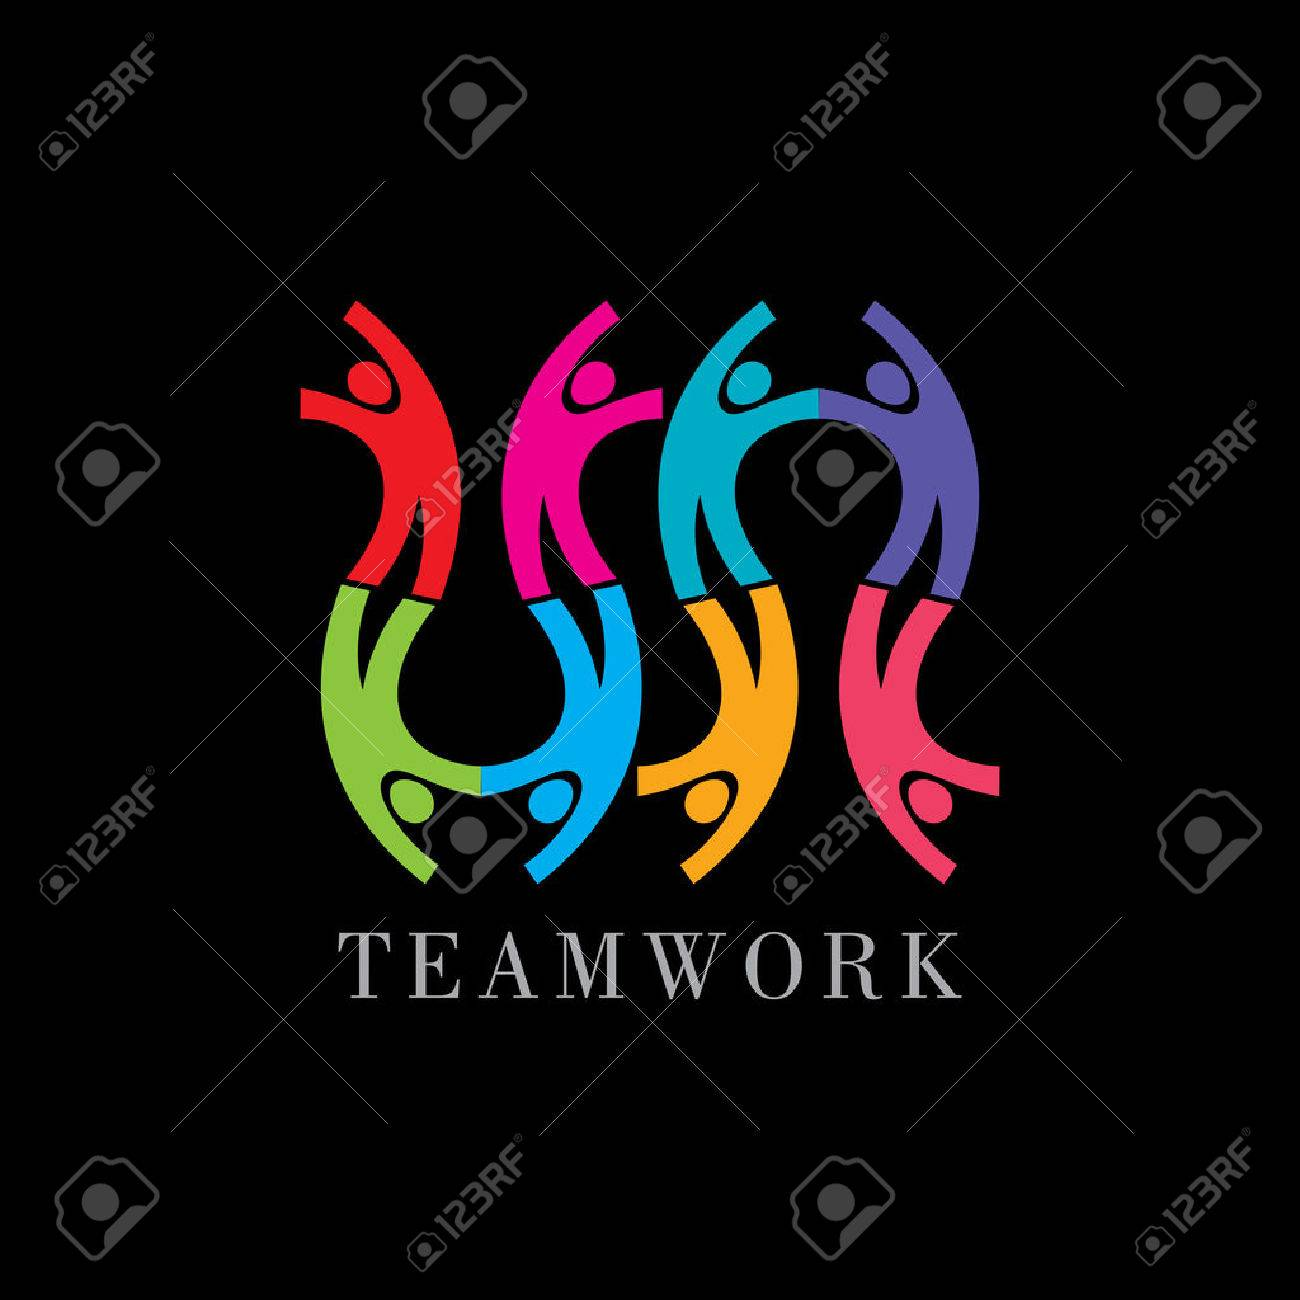 Concept of communityworkersunitysocial networking icon image template. Teamwork vector Standard-Bild - 41621883